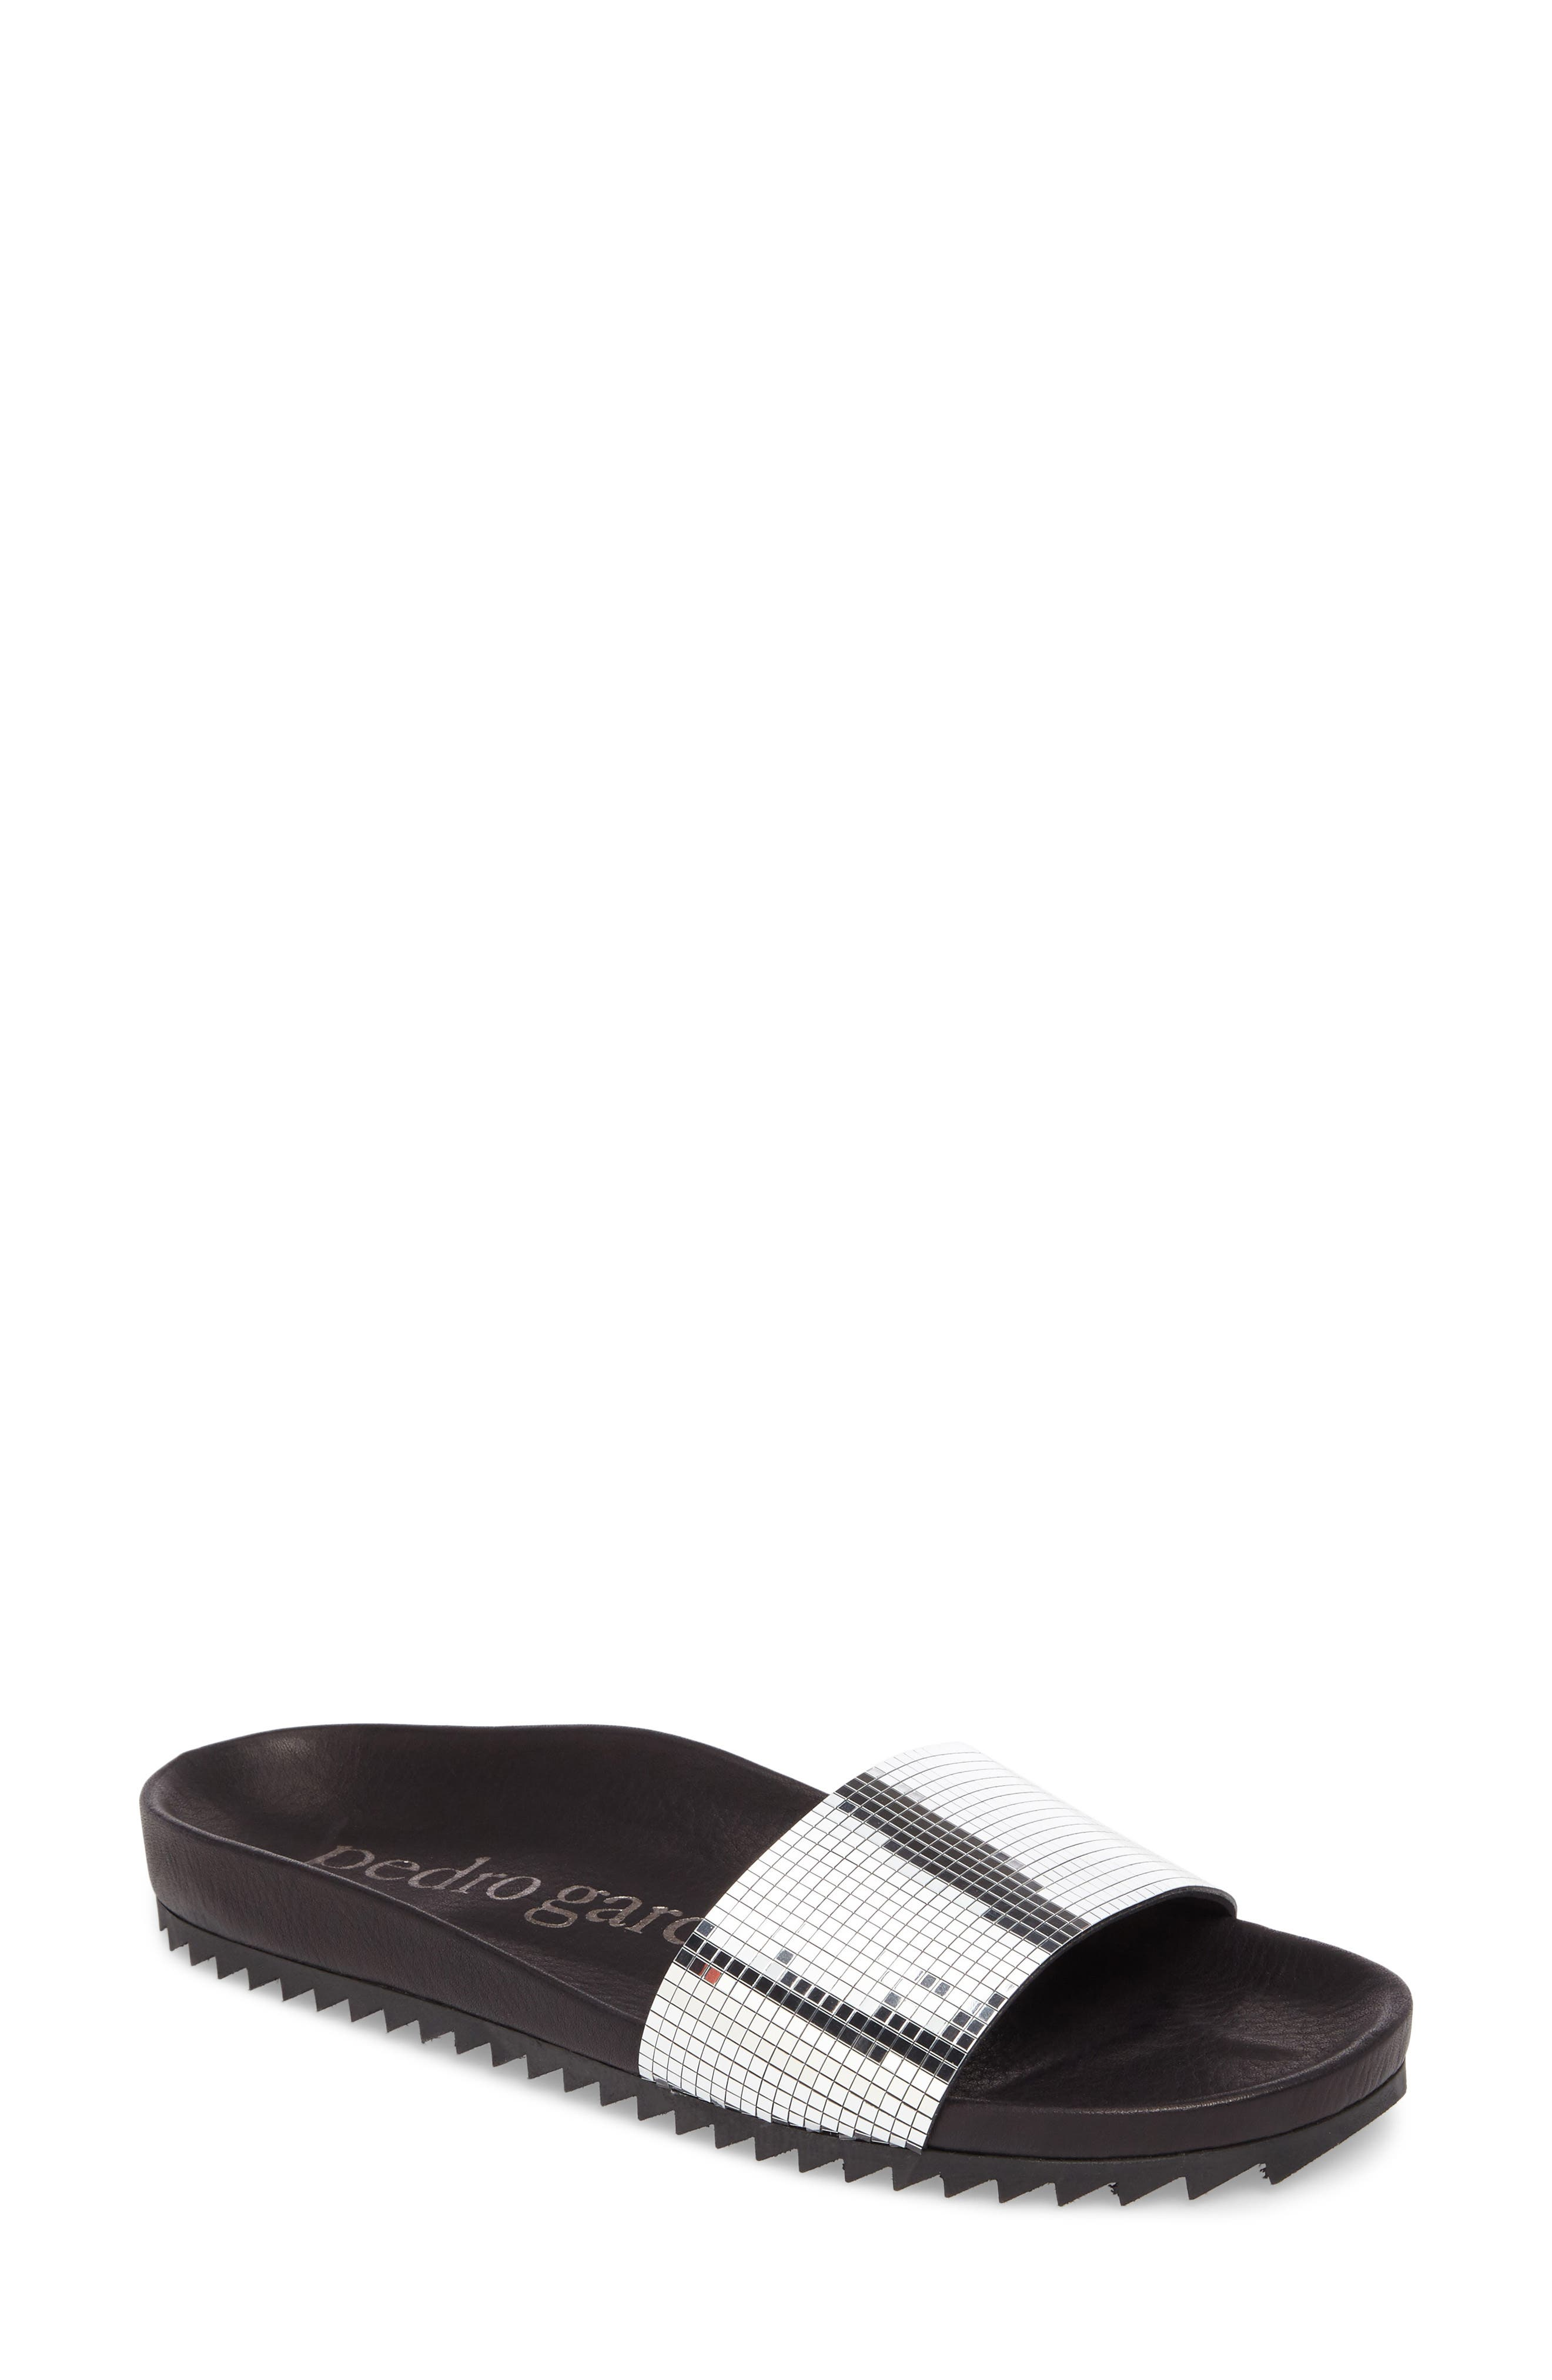 Alice Slide Sandal,                         Main,                         color, 040